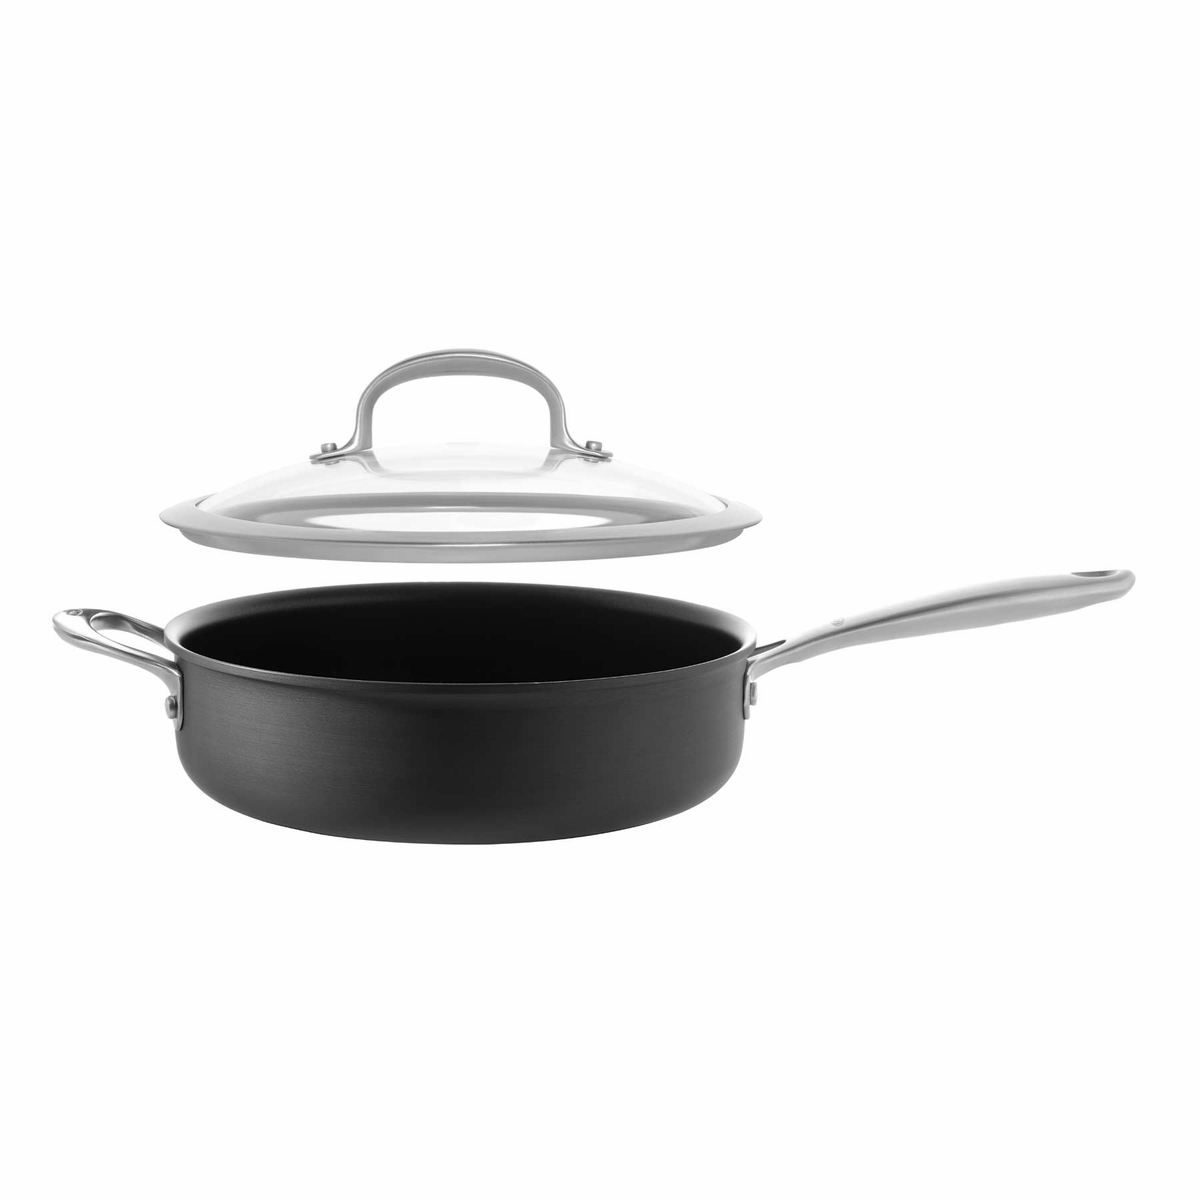 oxo good grips non stick pro covered saute pan with helper handle 3 quart at chefs corner store. Black Bedroom Furniture Sets. Home Design Ideas